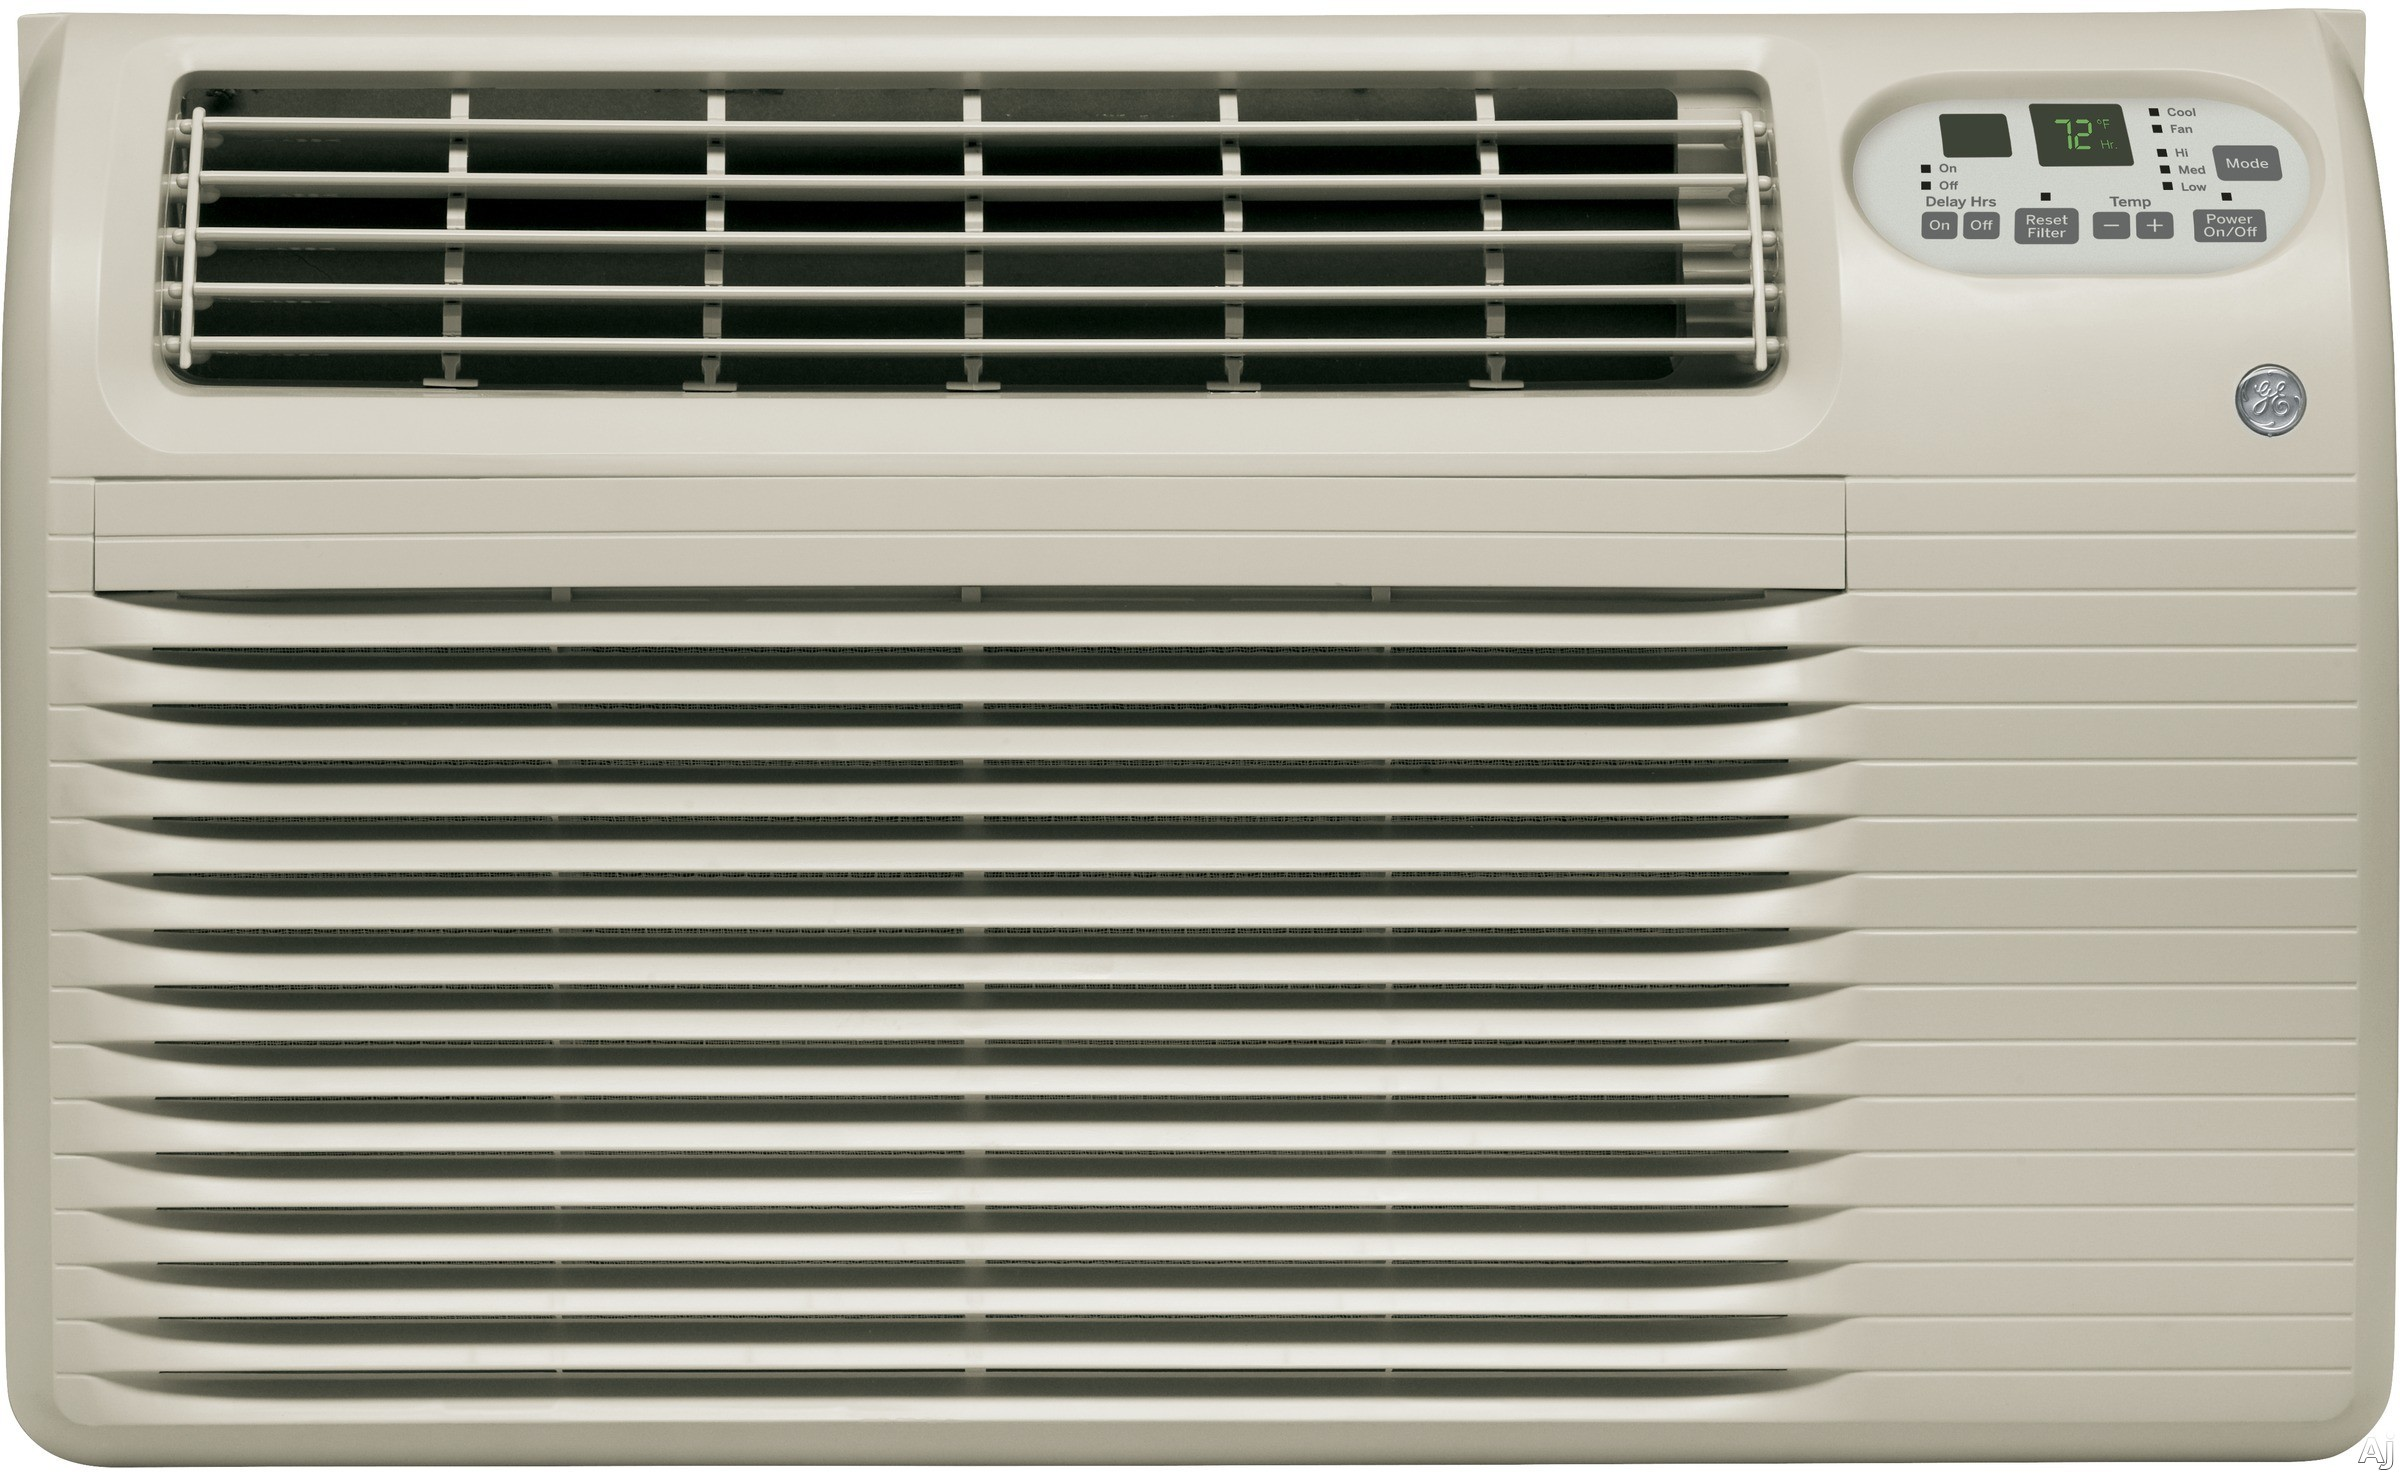 GE AJCQ12DCG 11 800 BTU Wall Air Conditioner with 270 CFM 10.6 EER 3.4 Pts Hr Dehumidification Capacity Washable Filter 3 Fan Speeds Electronic Digital Thermostat Control ADA Compliant and ENERGY STAR